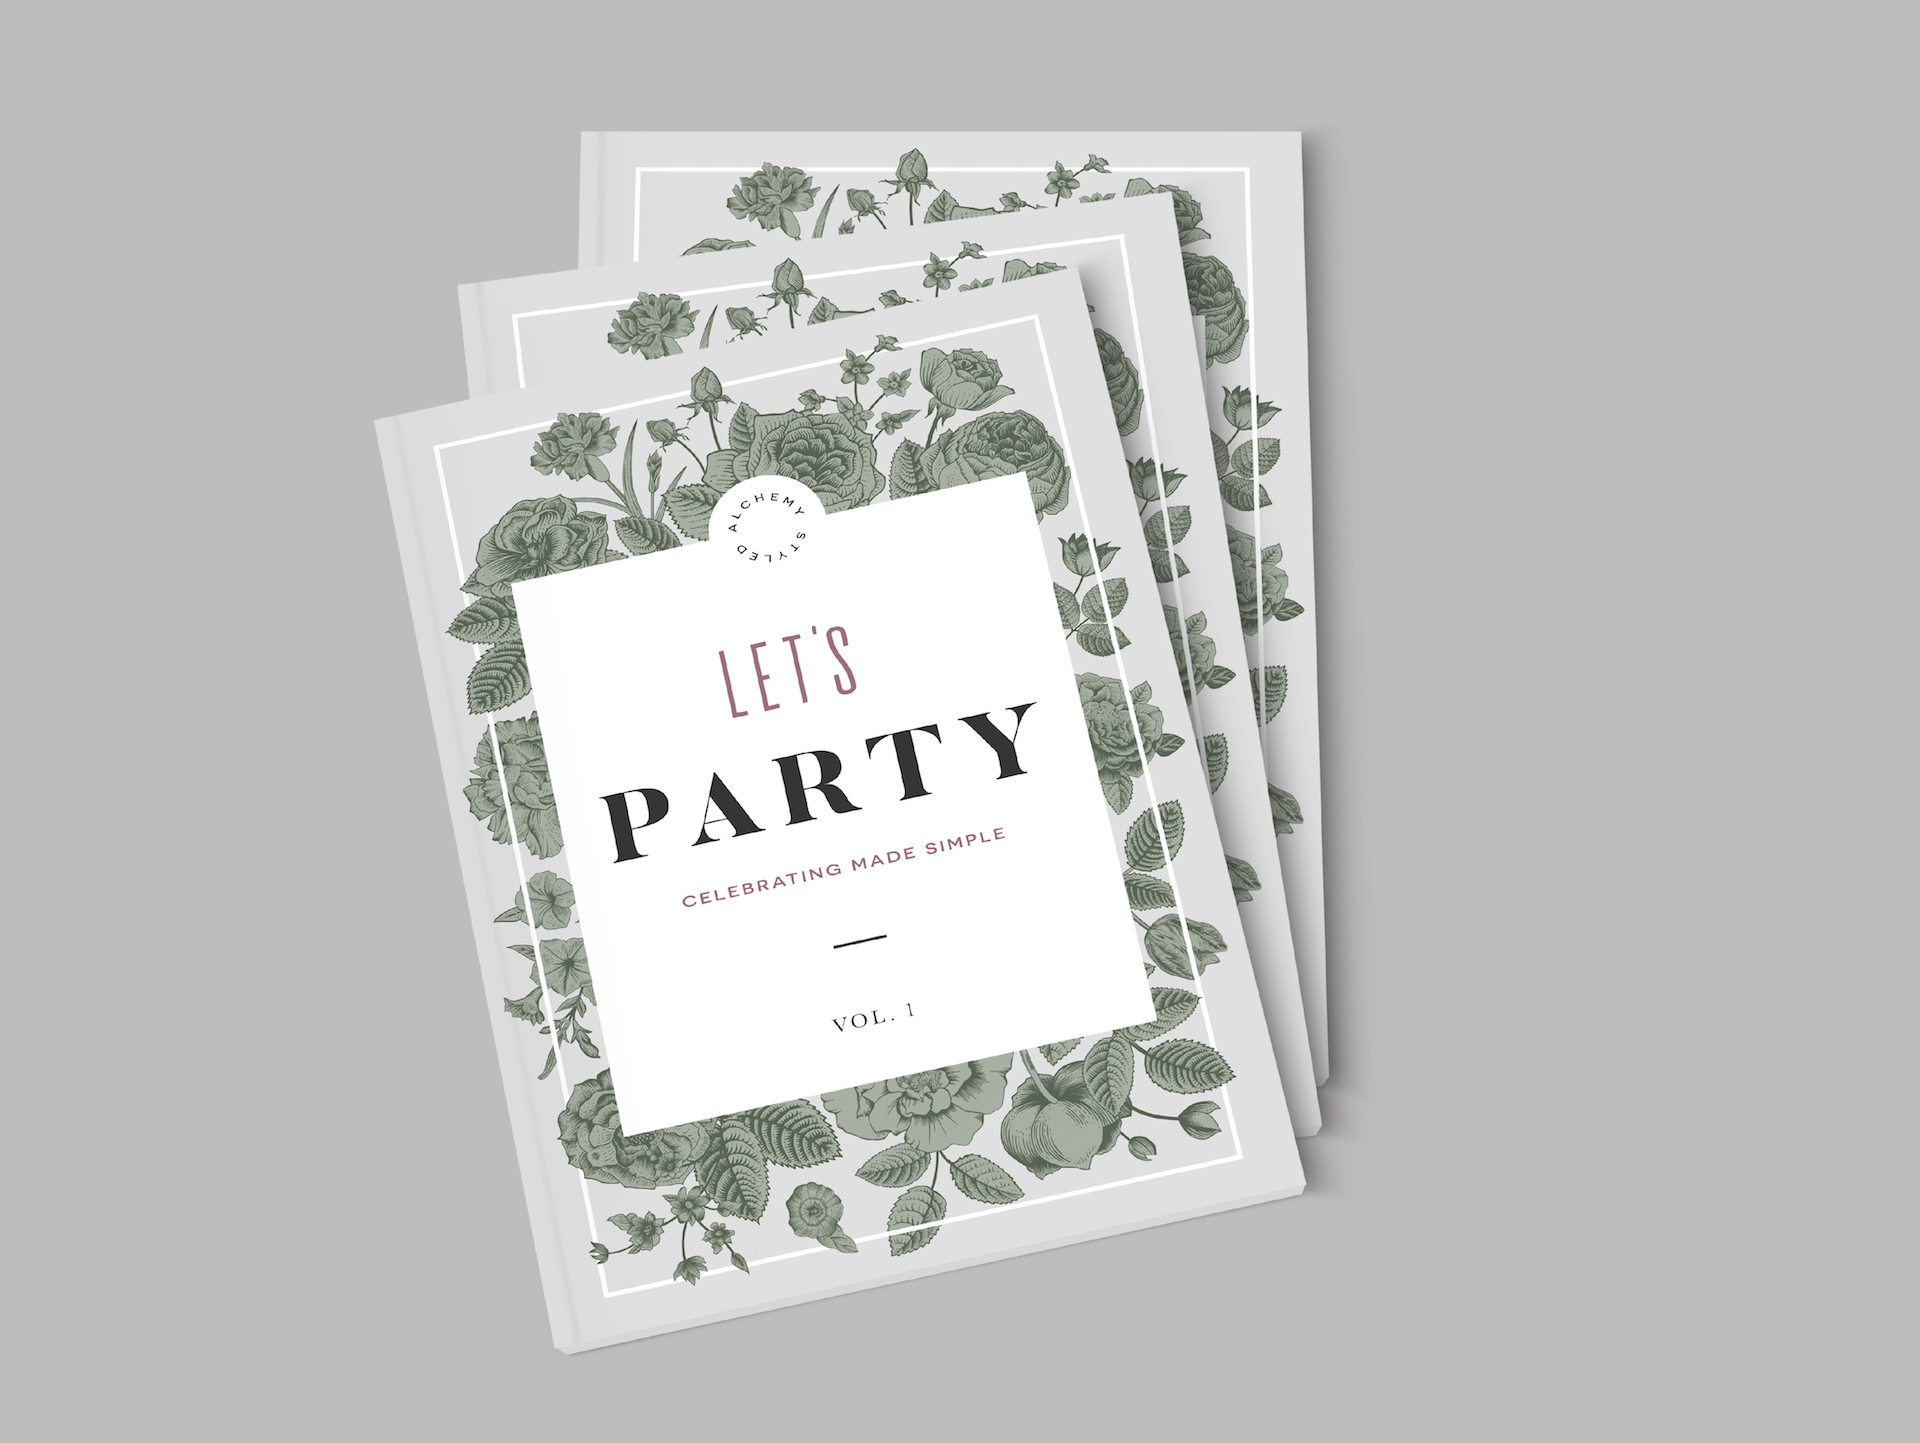 Let's Party - Editorial Design